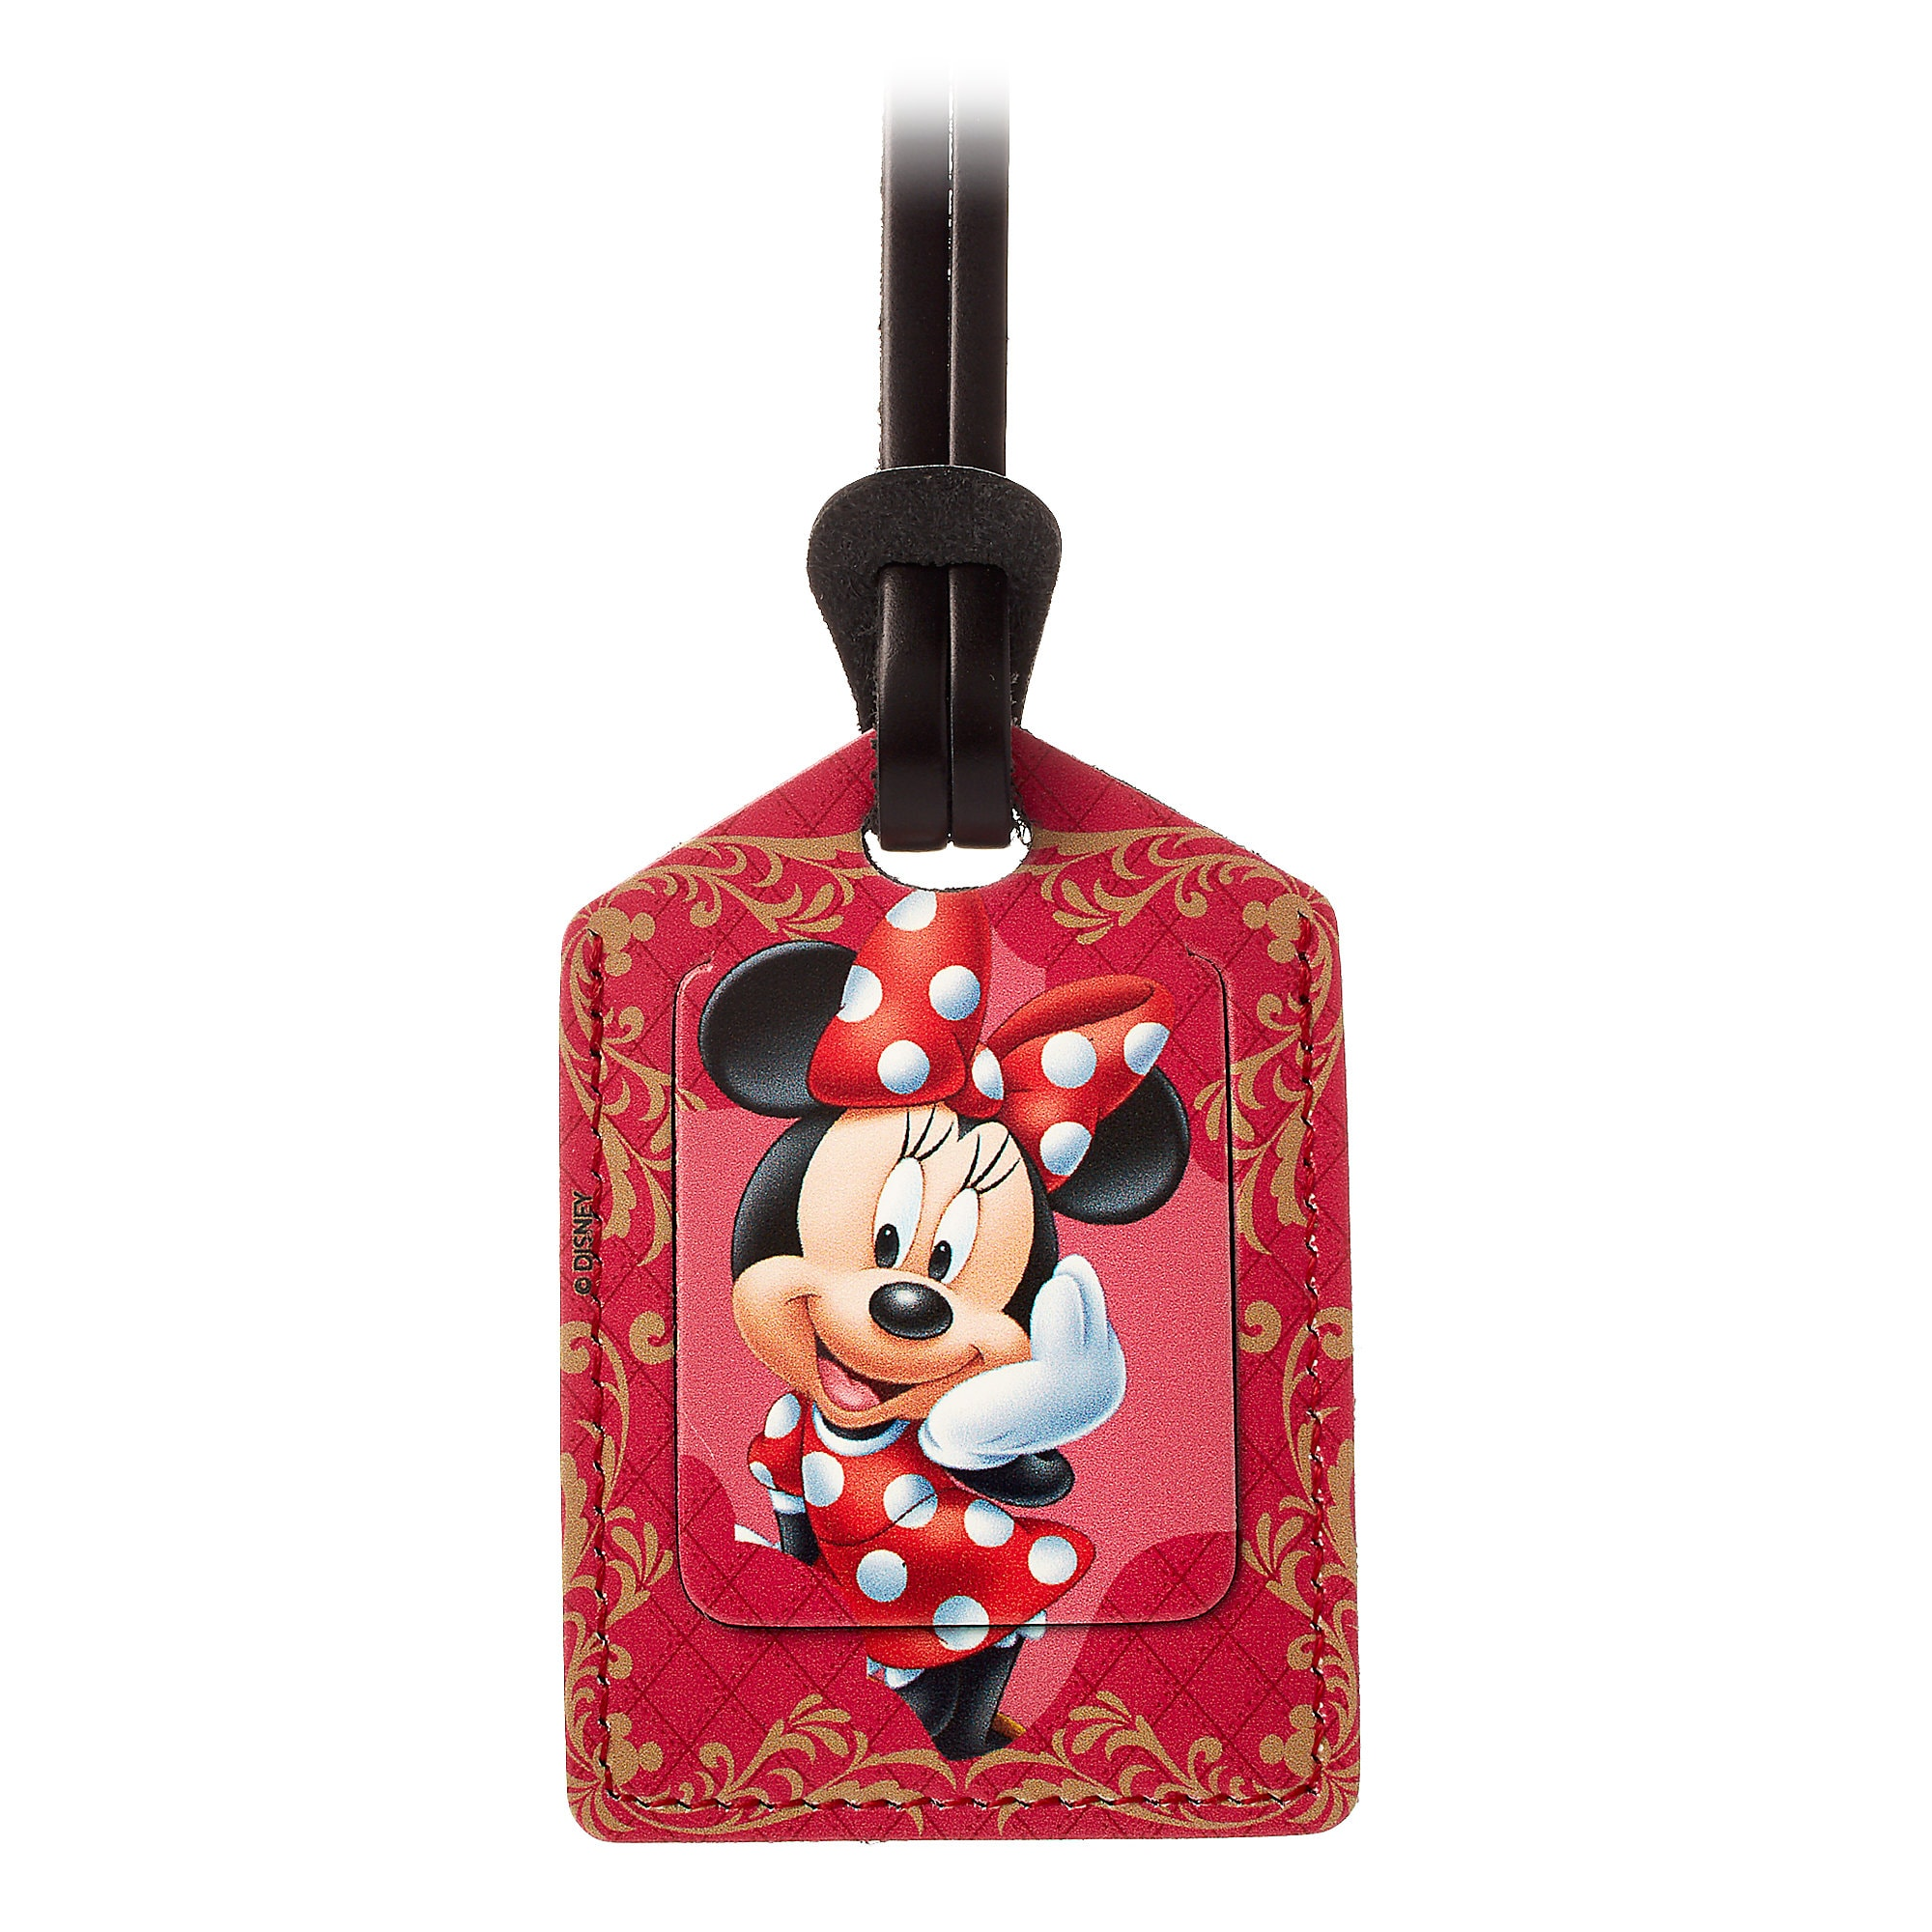 Minnie Mouse Leather Luggage Tag - Personalizable